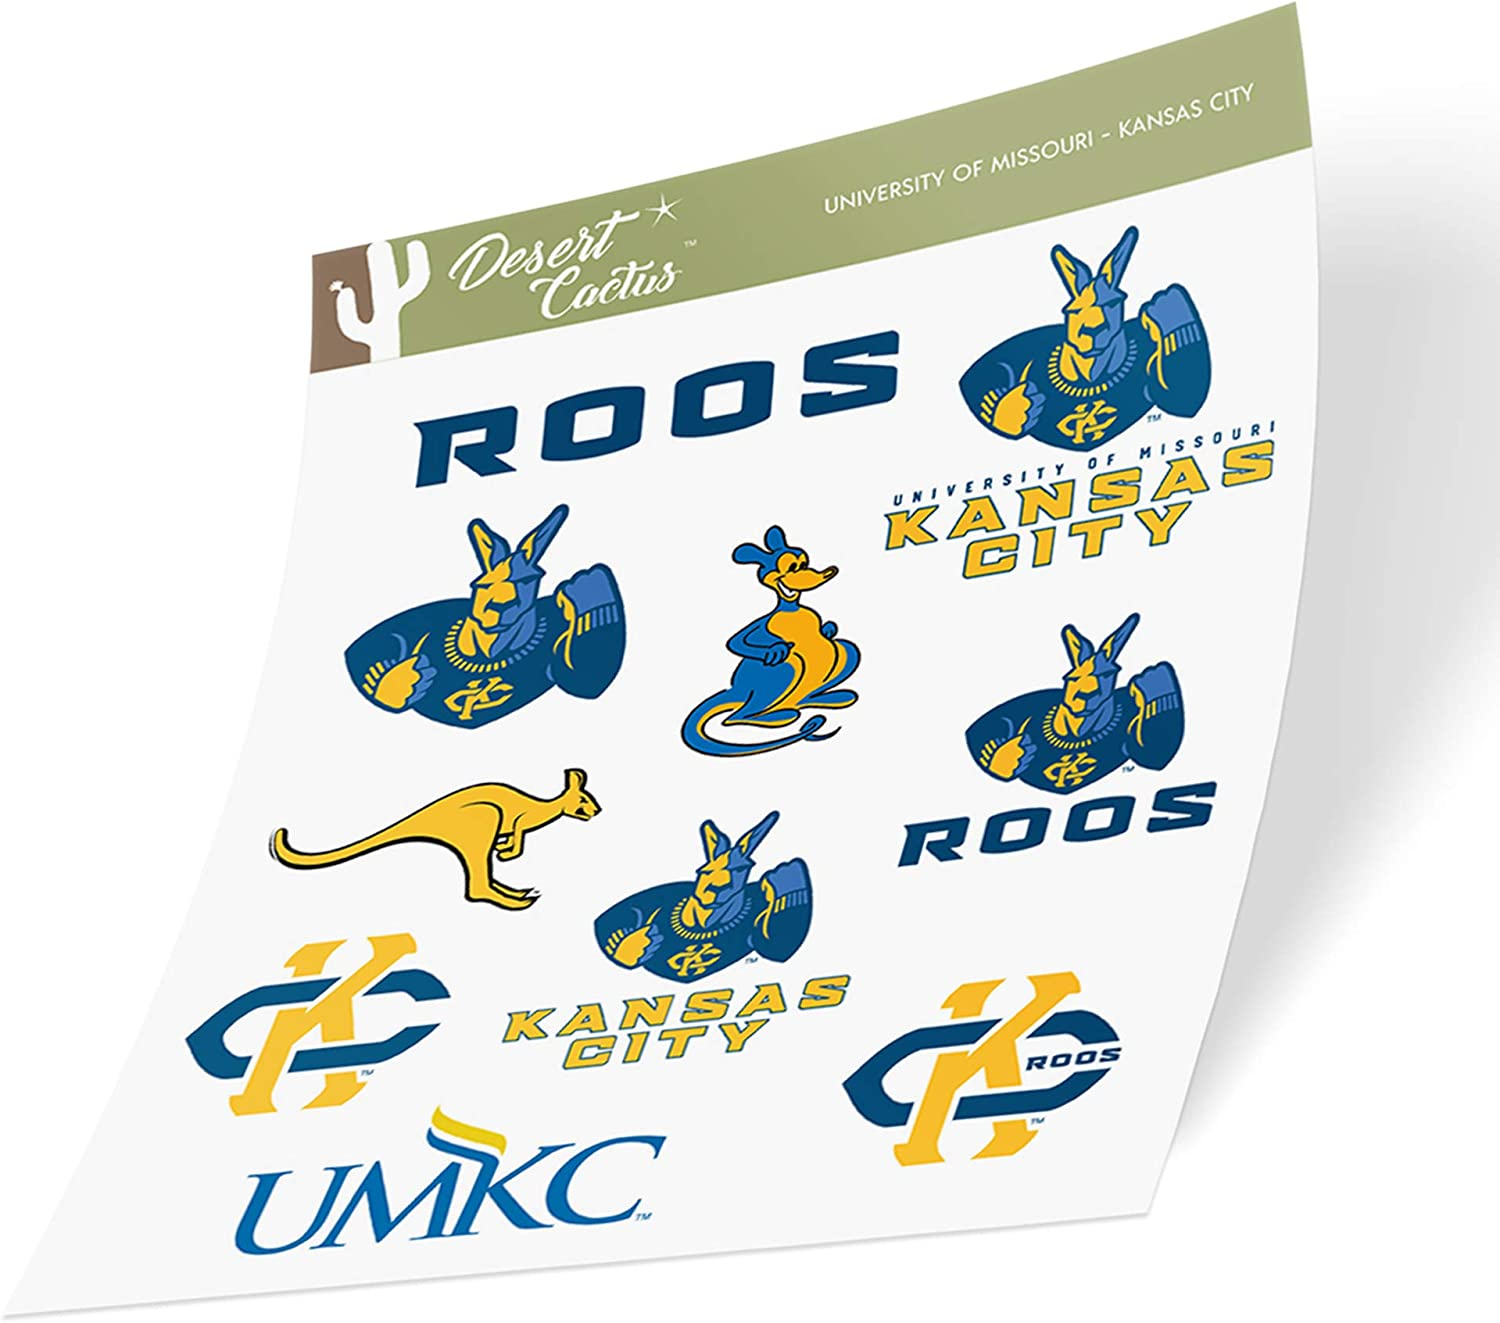 University of Missouri-Kansas City UMKC Kangaroos NCAA Sticker Vinyl Decal Laptop Water Bottle Car Scrapbook (Type 2 Sheet)